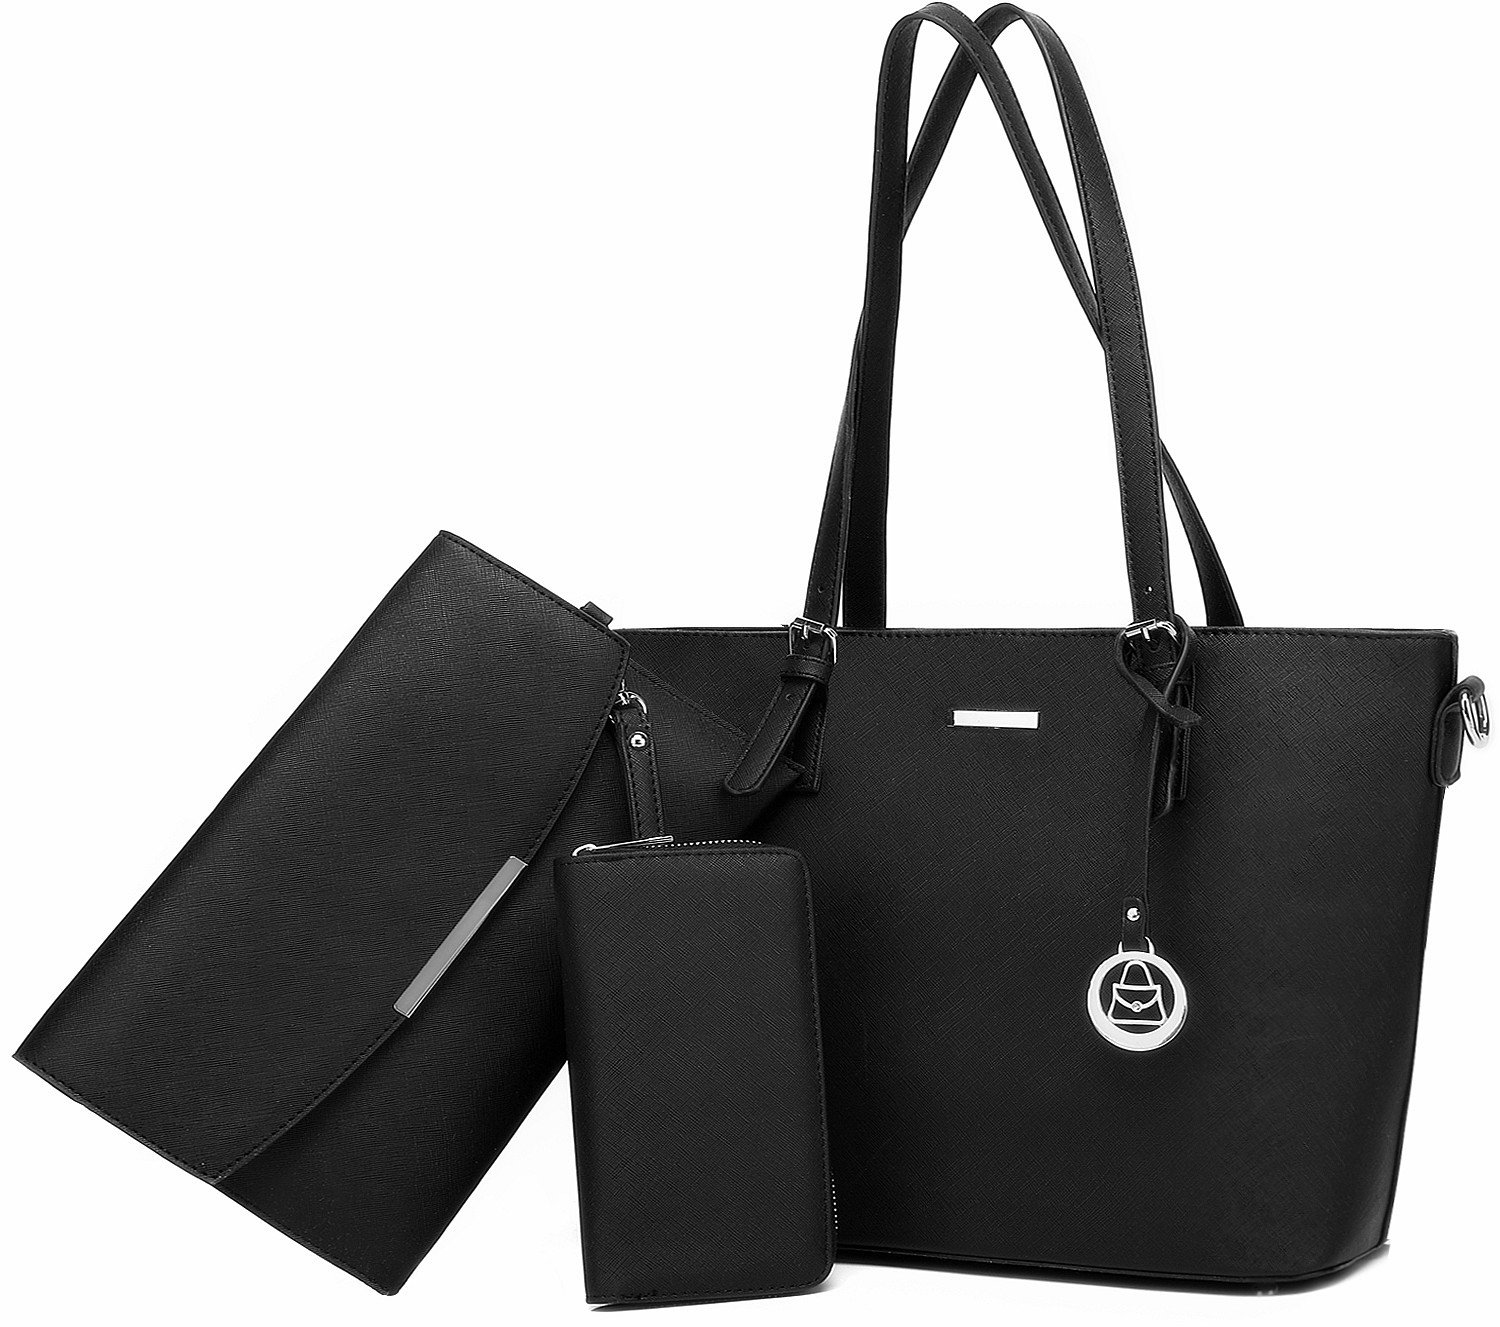 Women Shoulder Handbag + Envelopes+Wallet 3 Piece Set Bag for Work and Travel (Black)